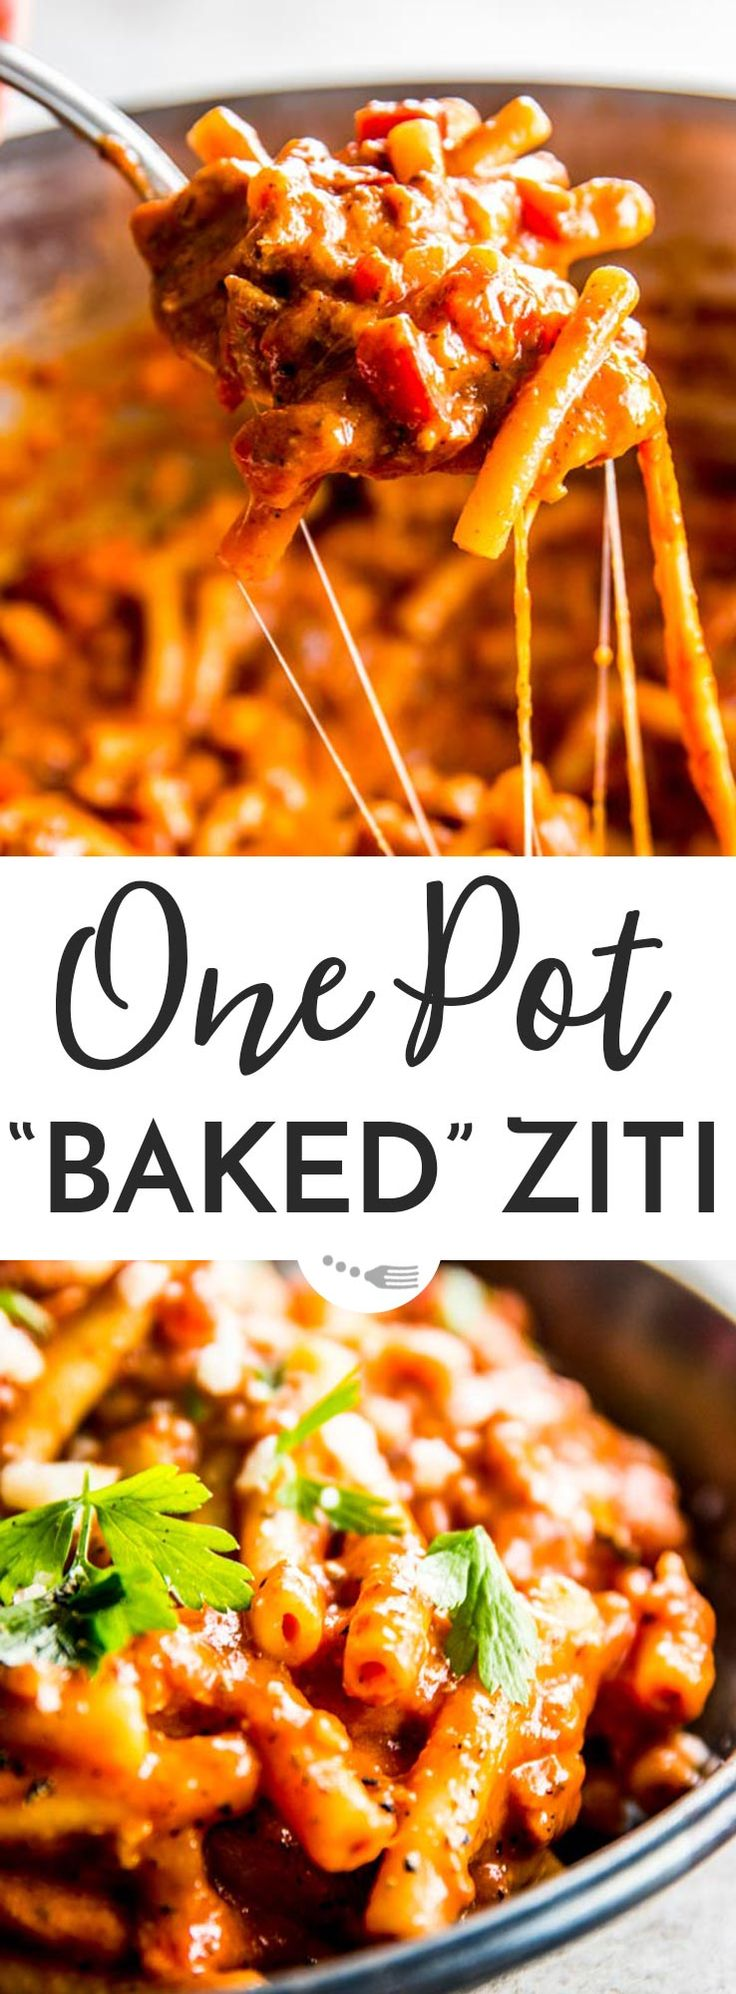 "This easy ""baked"" ziti recipe is cheeky - it's not baked at all! Made in one pot on the stovetop, this is a fuss-free dinner recipe you can have on the table in just 30 minutes. Made with Italian sausage, cream cheese and more cheesy goodness for the BEST easy and creamy meal. Perfect to feed a crowd, too! 